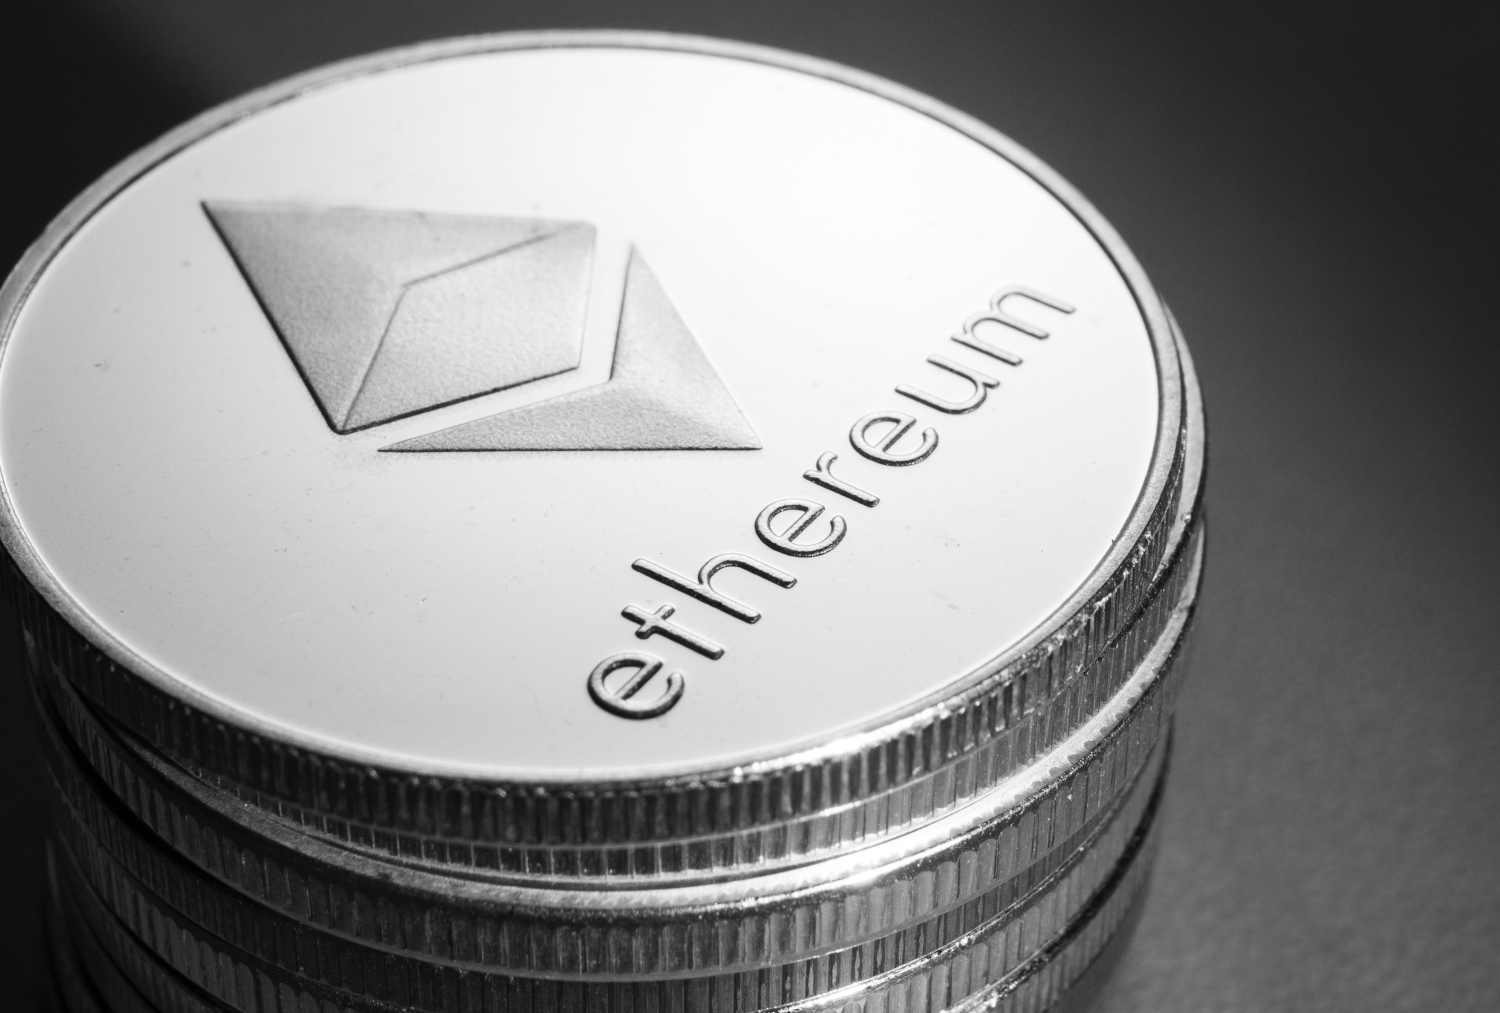 Ethereum 2.0 Now Has Over 200k Validators, 6.42M ETH Staked